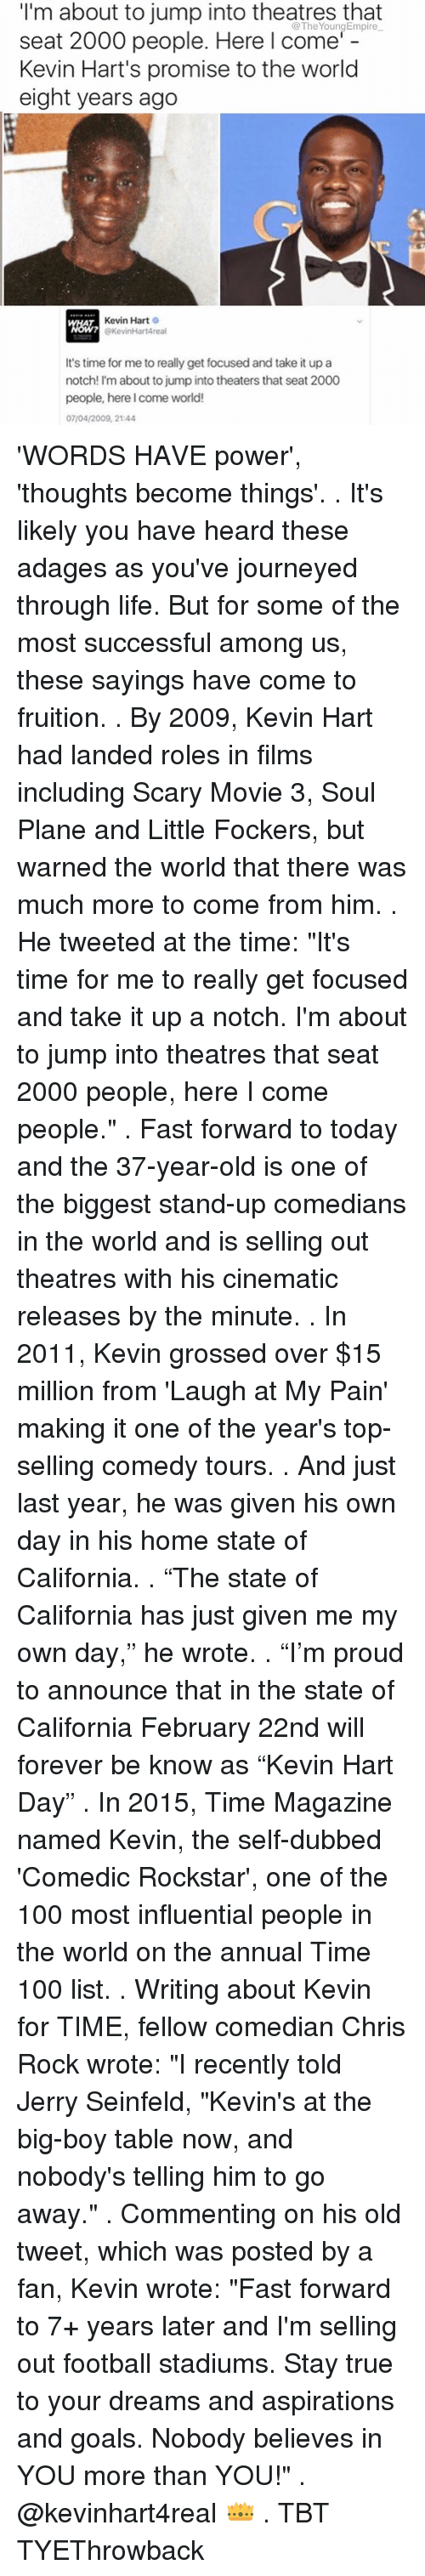 "fruition: I'm about to jump into theatres that  seat 2000 people. Here I come'  Kevin Hart's promise to the world  eight years ago  Kevin Hart  O  @KevinHartAreal  It's time for me to really get focused and take it up a  notch! I'm about to jump into theaters that seat 2000  people, here I come world!  07/04/2009, 21:44 'WORDS HAVE power', 'thoughts become things'. . It's likely you have heard these adages as you've journeyed through life. But for some of the most successful among us, these sayings have come to fruition. . By 2009, Kevin Hart had landed roles in films including Scary Movie 3, Soul Plane and Little Fockers, but warned the world that there was much more to come from him. . He tweeted at the time: ""It's time for me to really get focused and take it up a notch. I'm about to jump into theatres that seat 2000 people, here I come people."" . Fast forward to today and the 37-year-old is one of the biggest stand-up comedians in the world and is selling out theatres with his cinematic releases by the minute. . In 2011, Kevin grossed over $15 million from 'Laugh at My Pain' making it one of the year's top-selling comedy tours. . And just last year, he was given his own day in his home state of California. . ""The state of California has just given me my own day,"" he wrote. . ""I'm proud to announce that in the state of California February 22nd will forever be know as ""Kevin Hart Day"" . In 2015, Time Magazine named Kevin, the self-dubbed 'Comedic Rockstar', one of the 100 most influential people in the world on the annual Time 100 list. . Writing about Kevin for TIME, fellow comedian Chris Rock wrote: ""I recently told Jerry Seinfeld, ""Kevin's at the big-boy table now, and nobody's telling him to go away."" . Commenting on his old tweet, which was posted by a fan, Kevin wrote: ""Fast forward to 7+ years later and I'm selling out football stadiums. Stay true to your dreams and aspirations and goals. Nobody believes in YOU more than YOU!"" . @kevinhart4real 👑 . TBT TYEThrowback"